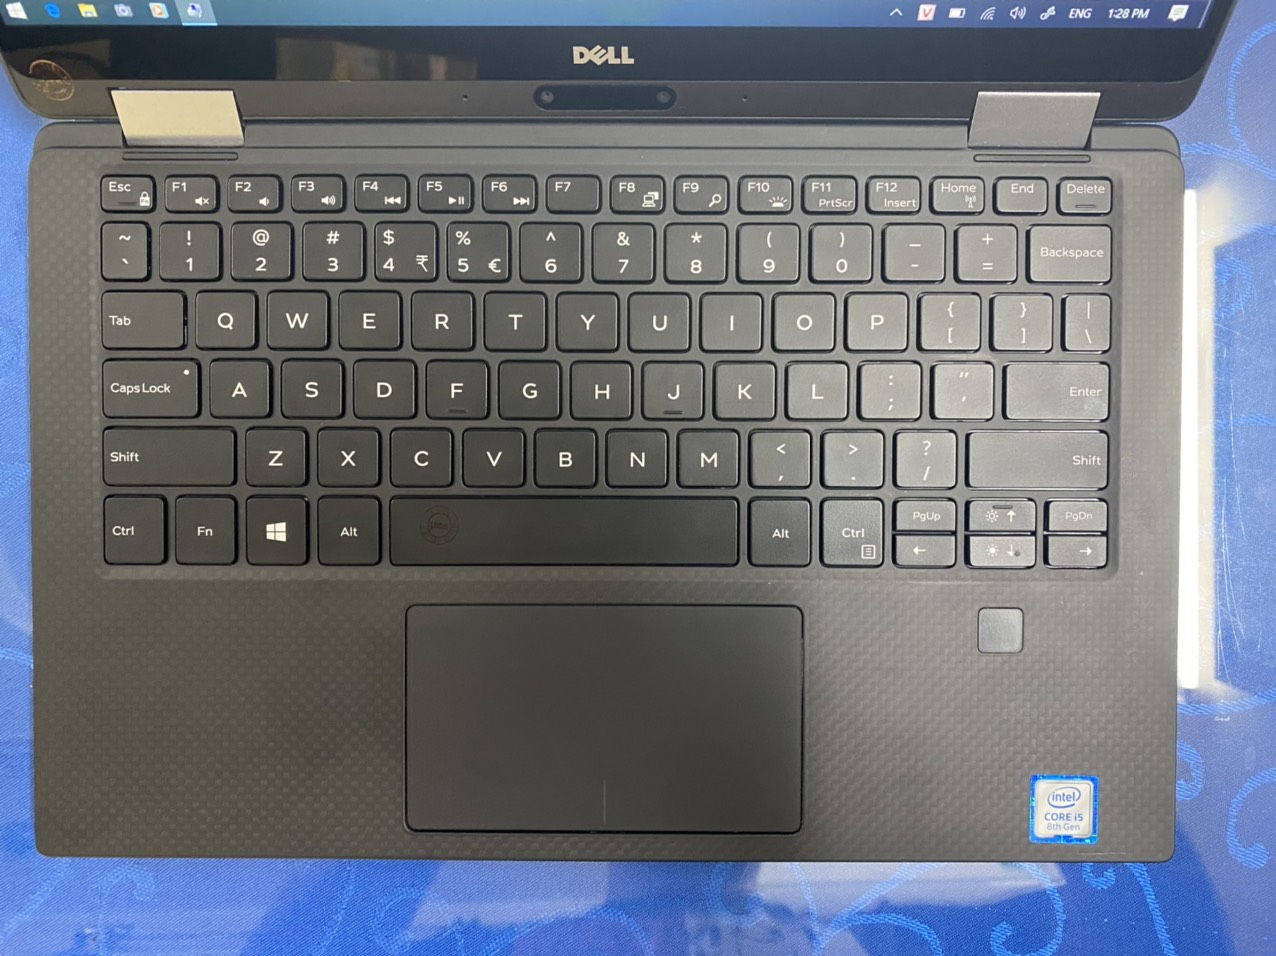 DELL XPS 13 9365 I5 8200Y 8GB 180GB 13.3FHD